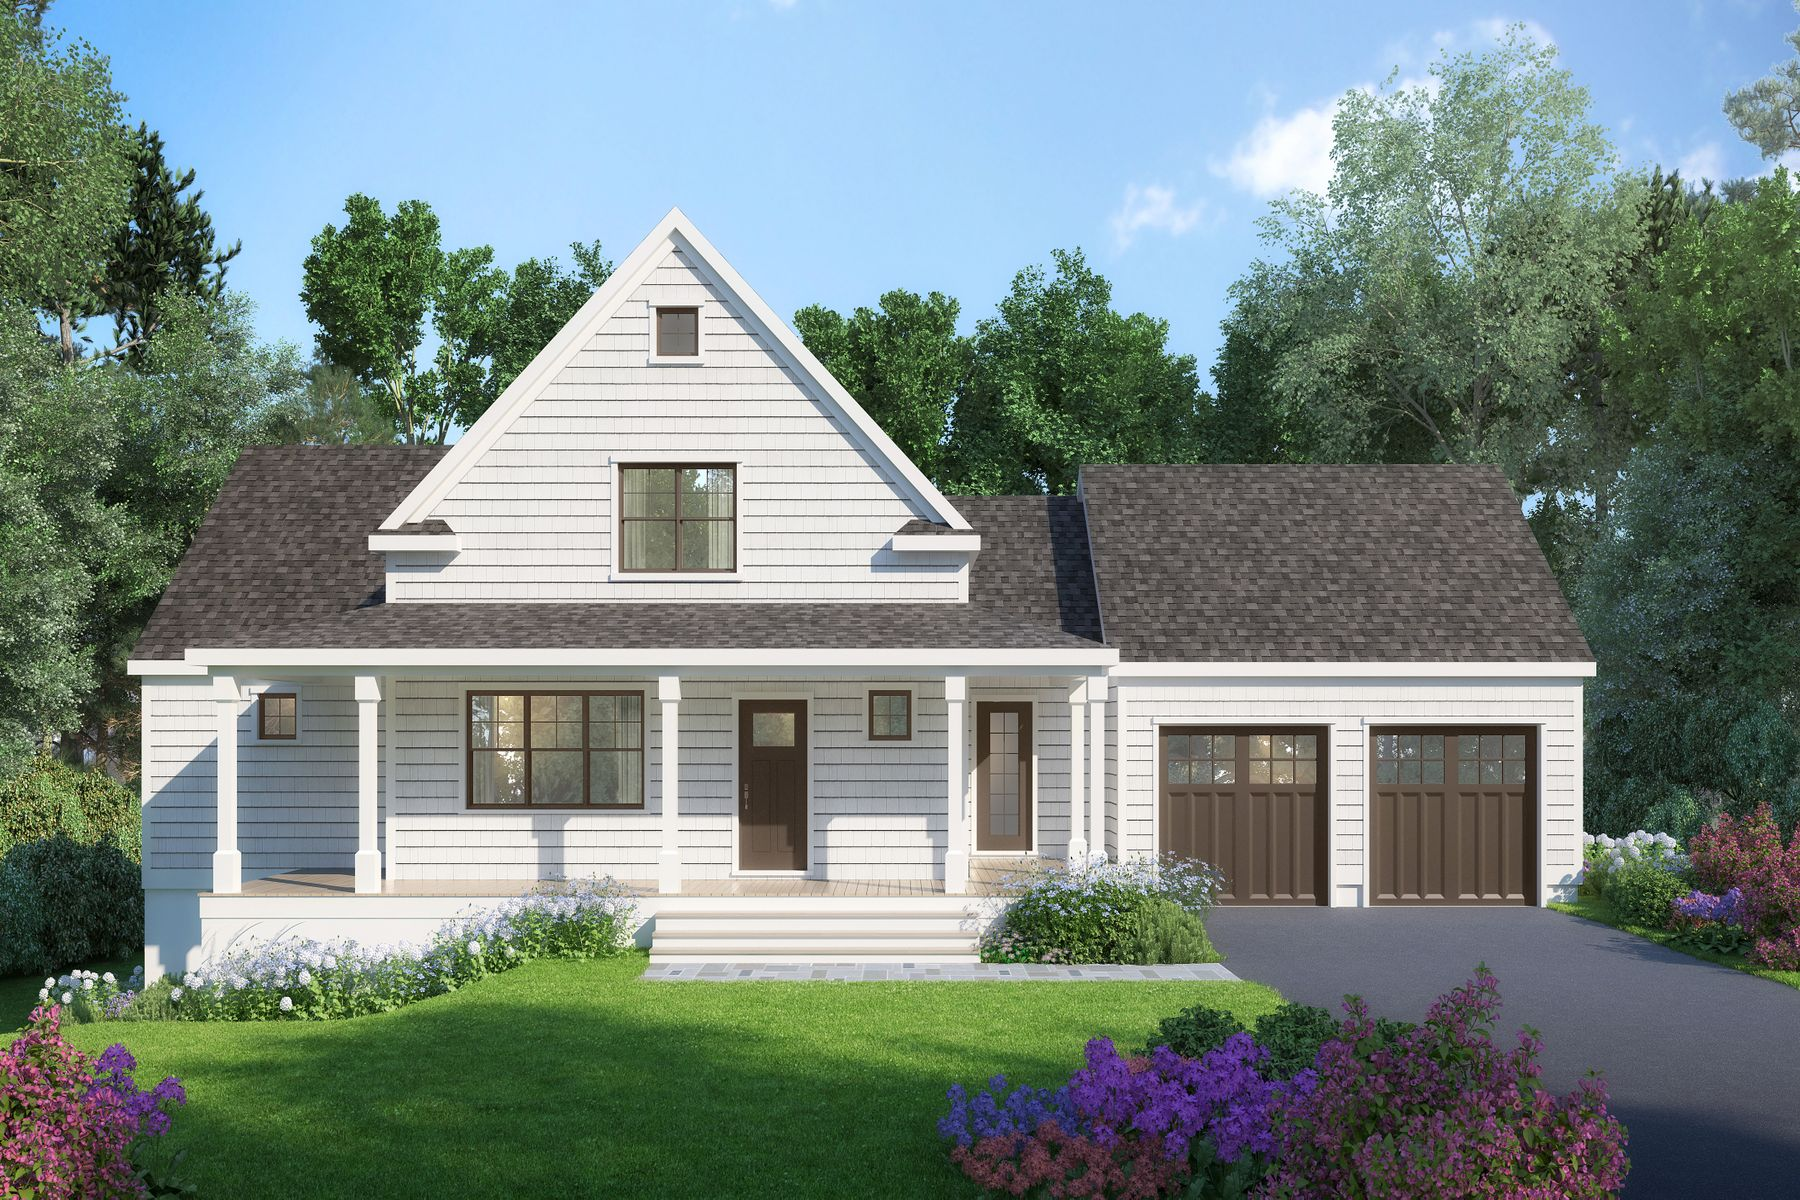 Single Family Home for Active at North Falmouth Village New Construction 107 Cobblestone Lane North Falmouth, Massachusetts 02556 United States